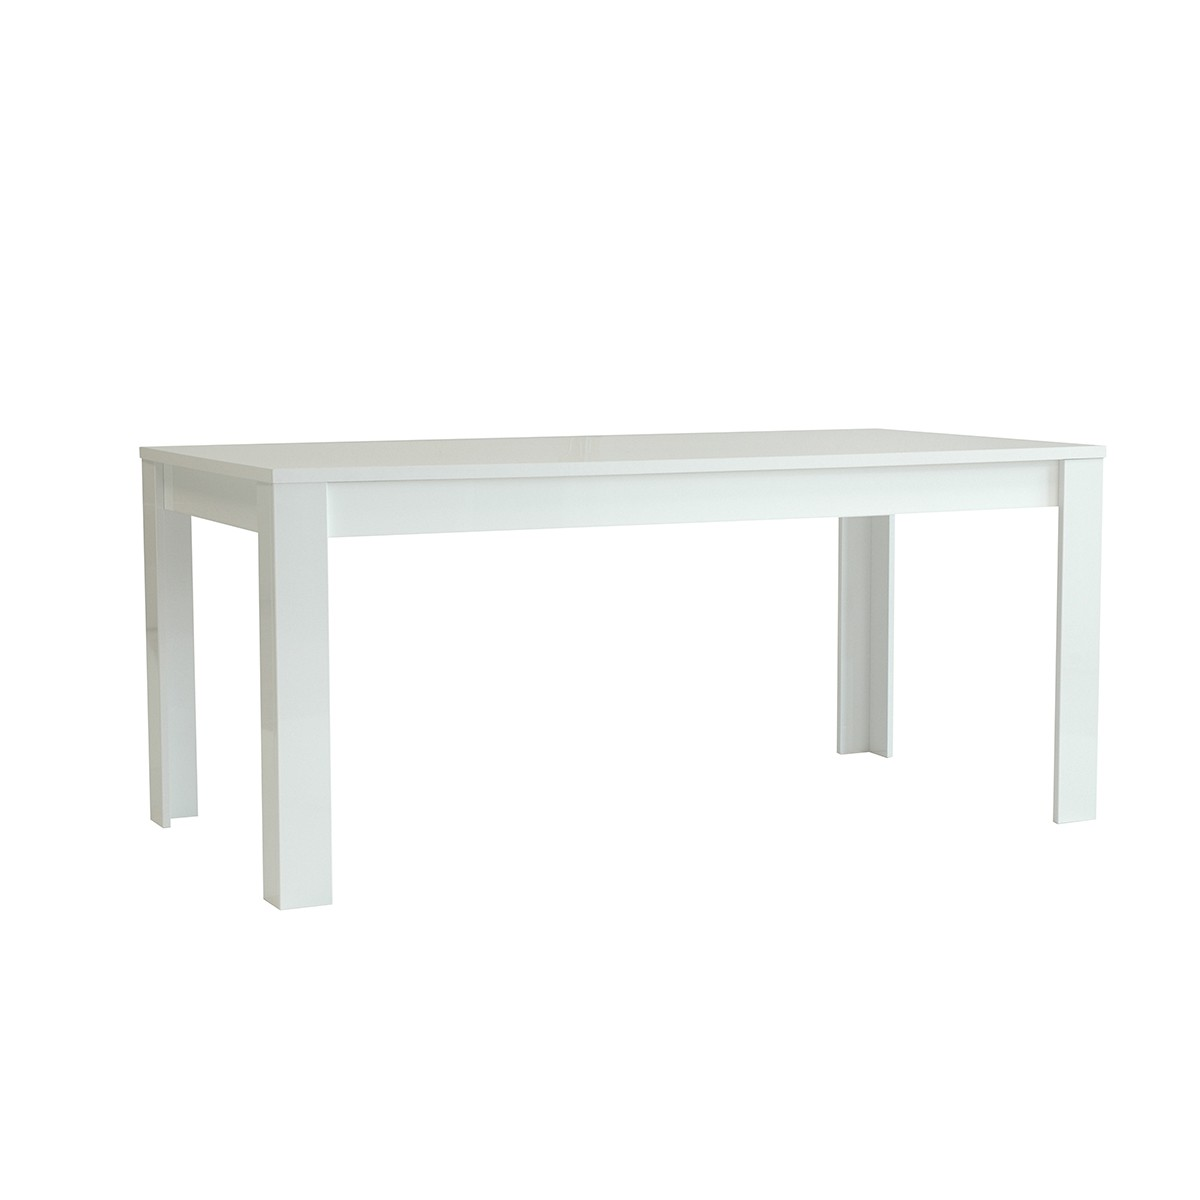 Table Rectangulaire Blanche Table Laquee Blanche Rectangulaire 180 Cm Mooviin